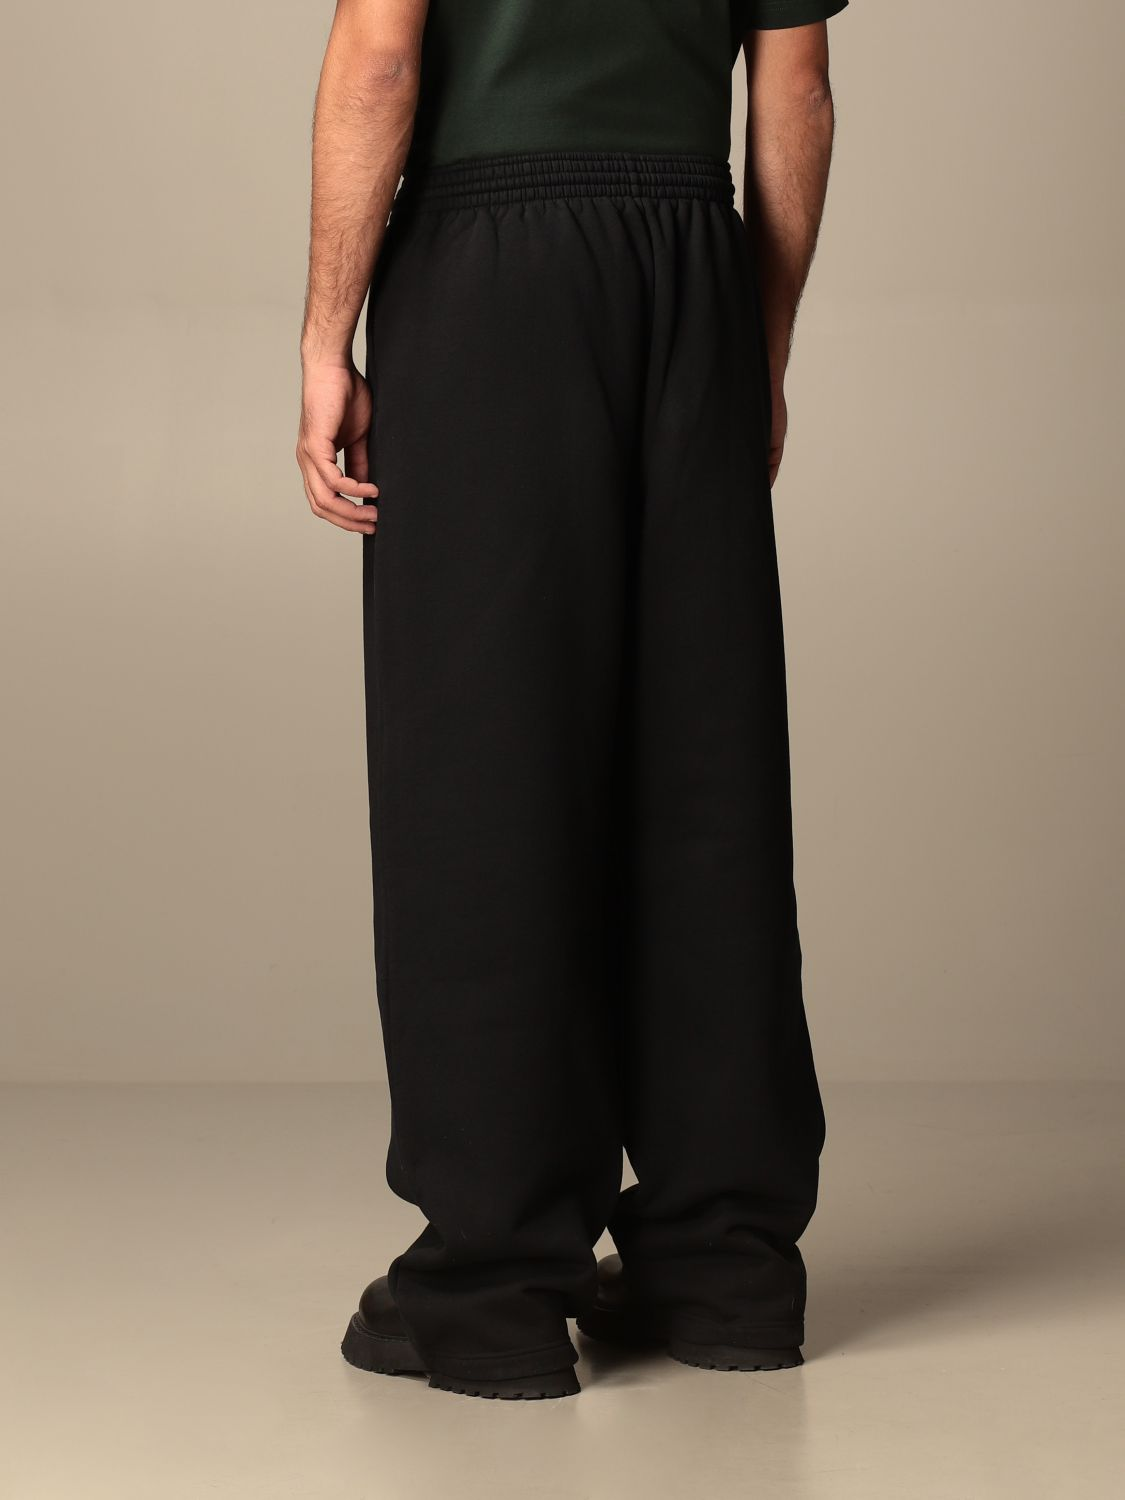 Trousers Balenciaga: Balenciaga cotton jogging pants black 3